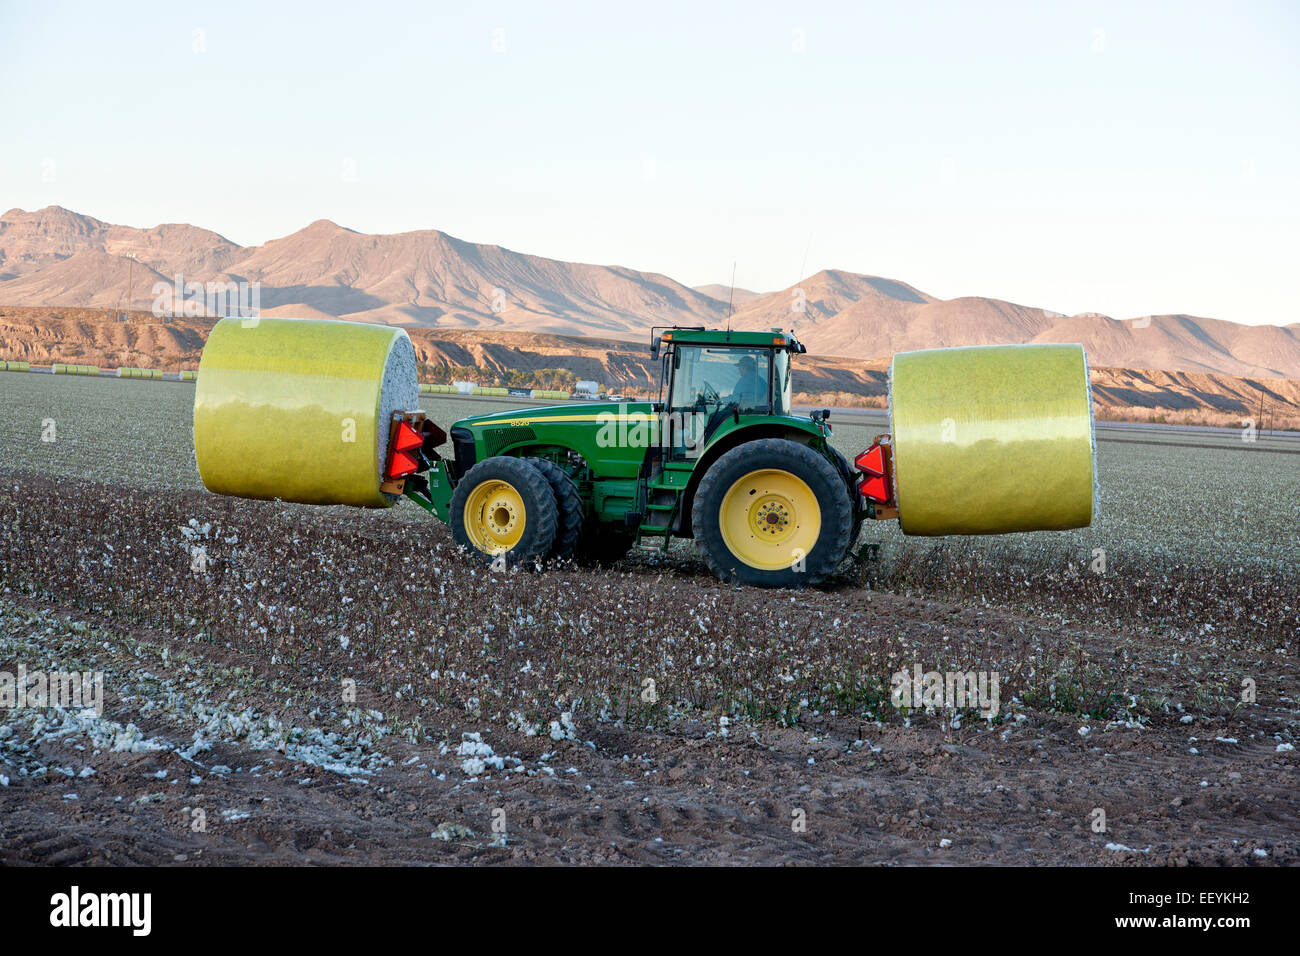 Tractor transporting cotton modules. - Stock Image